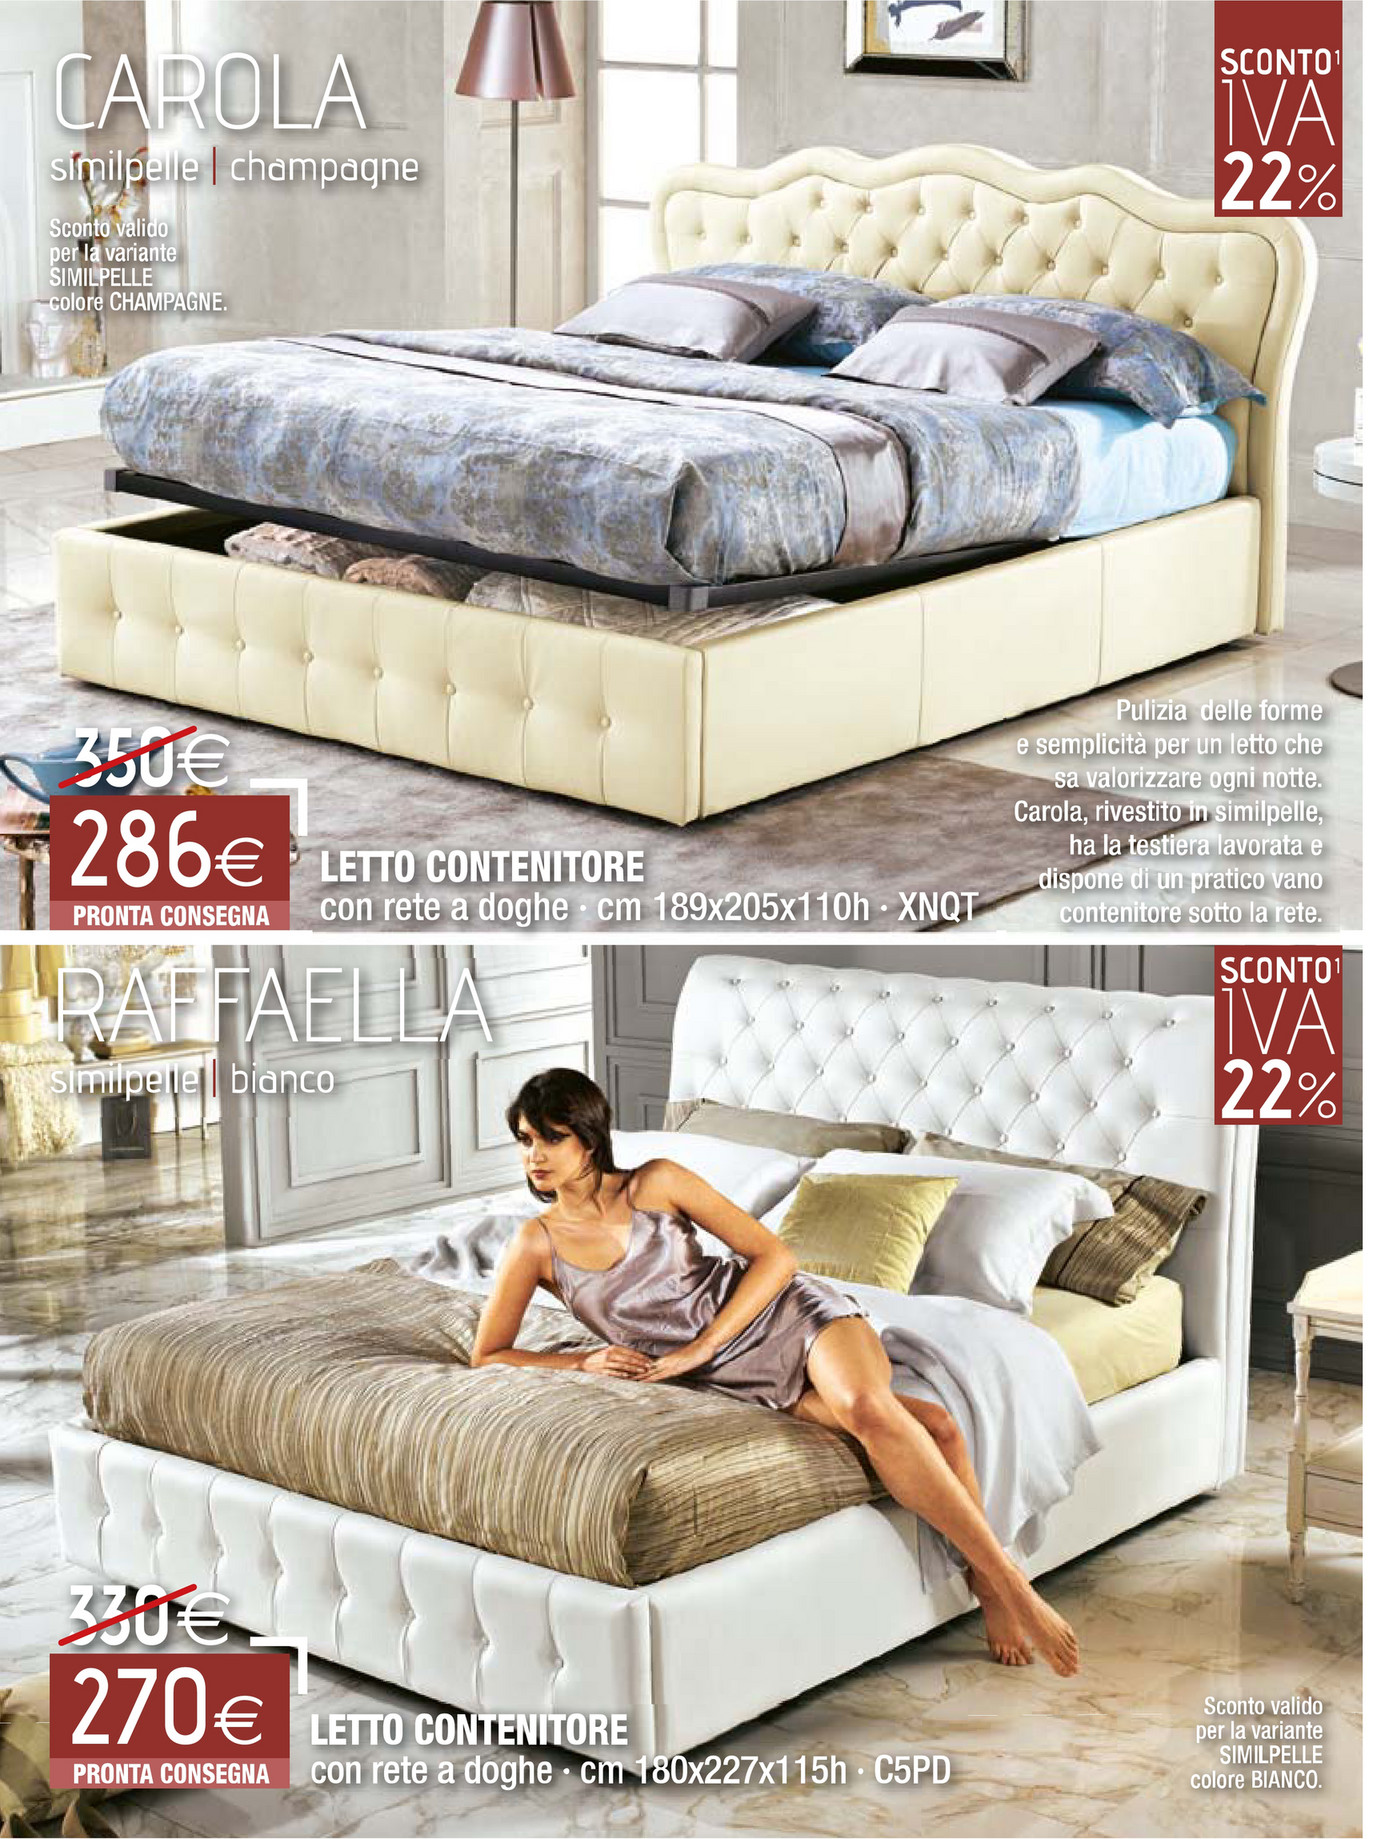 Letto carola mondo convenienza misure affordable camere a ponte mondo convenienza info with - Letto stone mondo convenienza ...